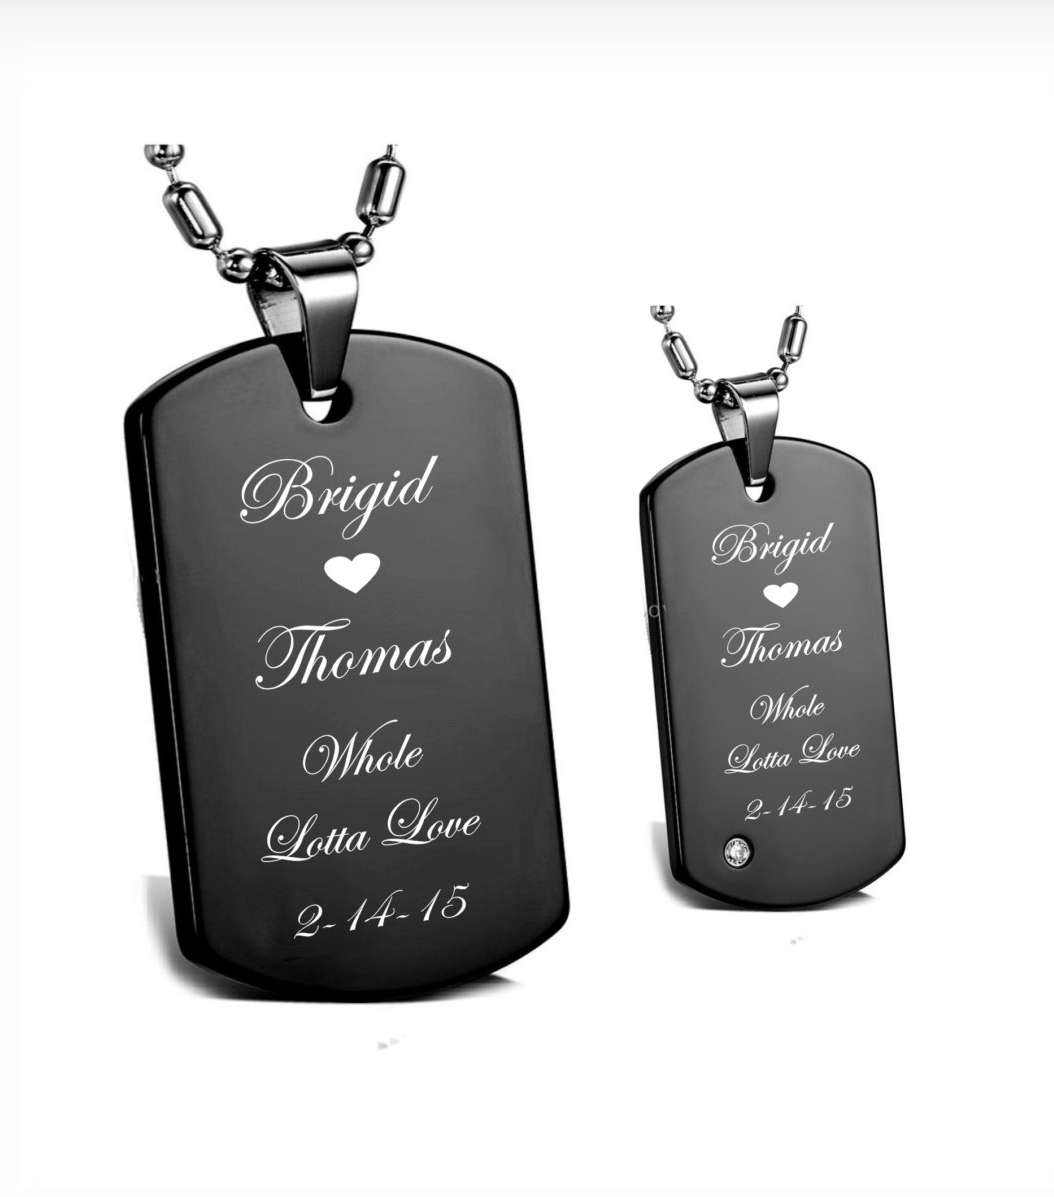 57c99fe546 FREE FRONT SIDE ENGRAVING ! Stainless Steel Black Dog Tag His & Hers  Necklace Set